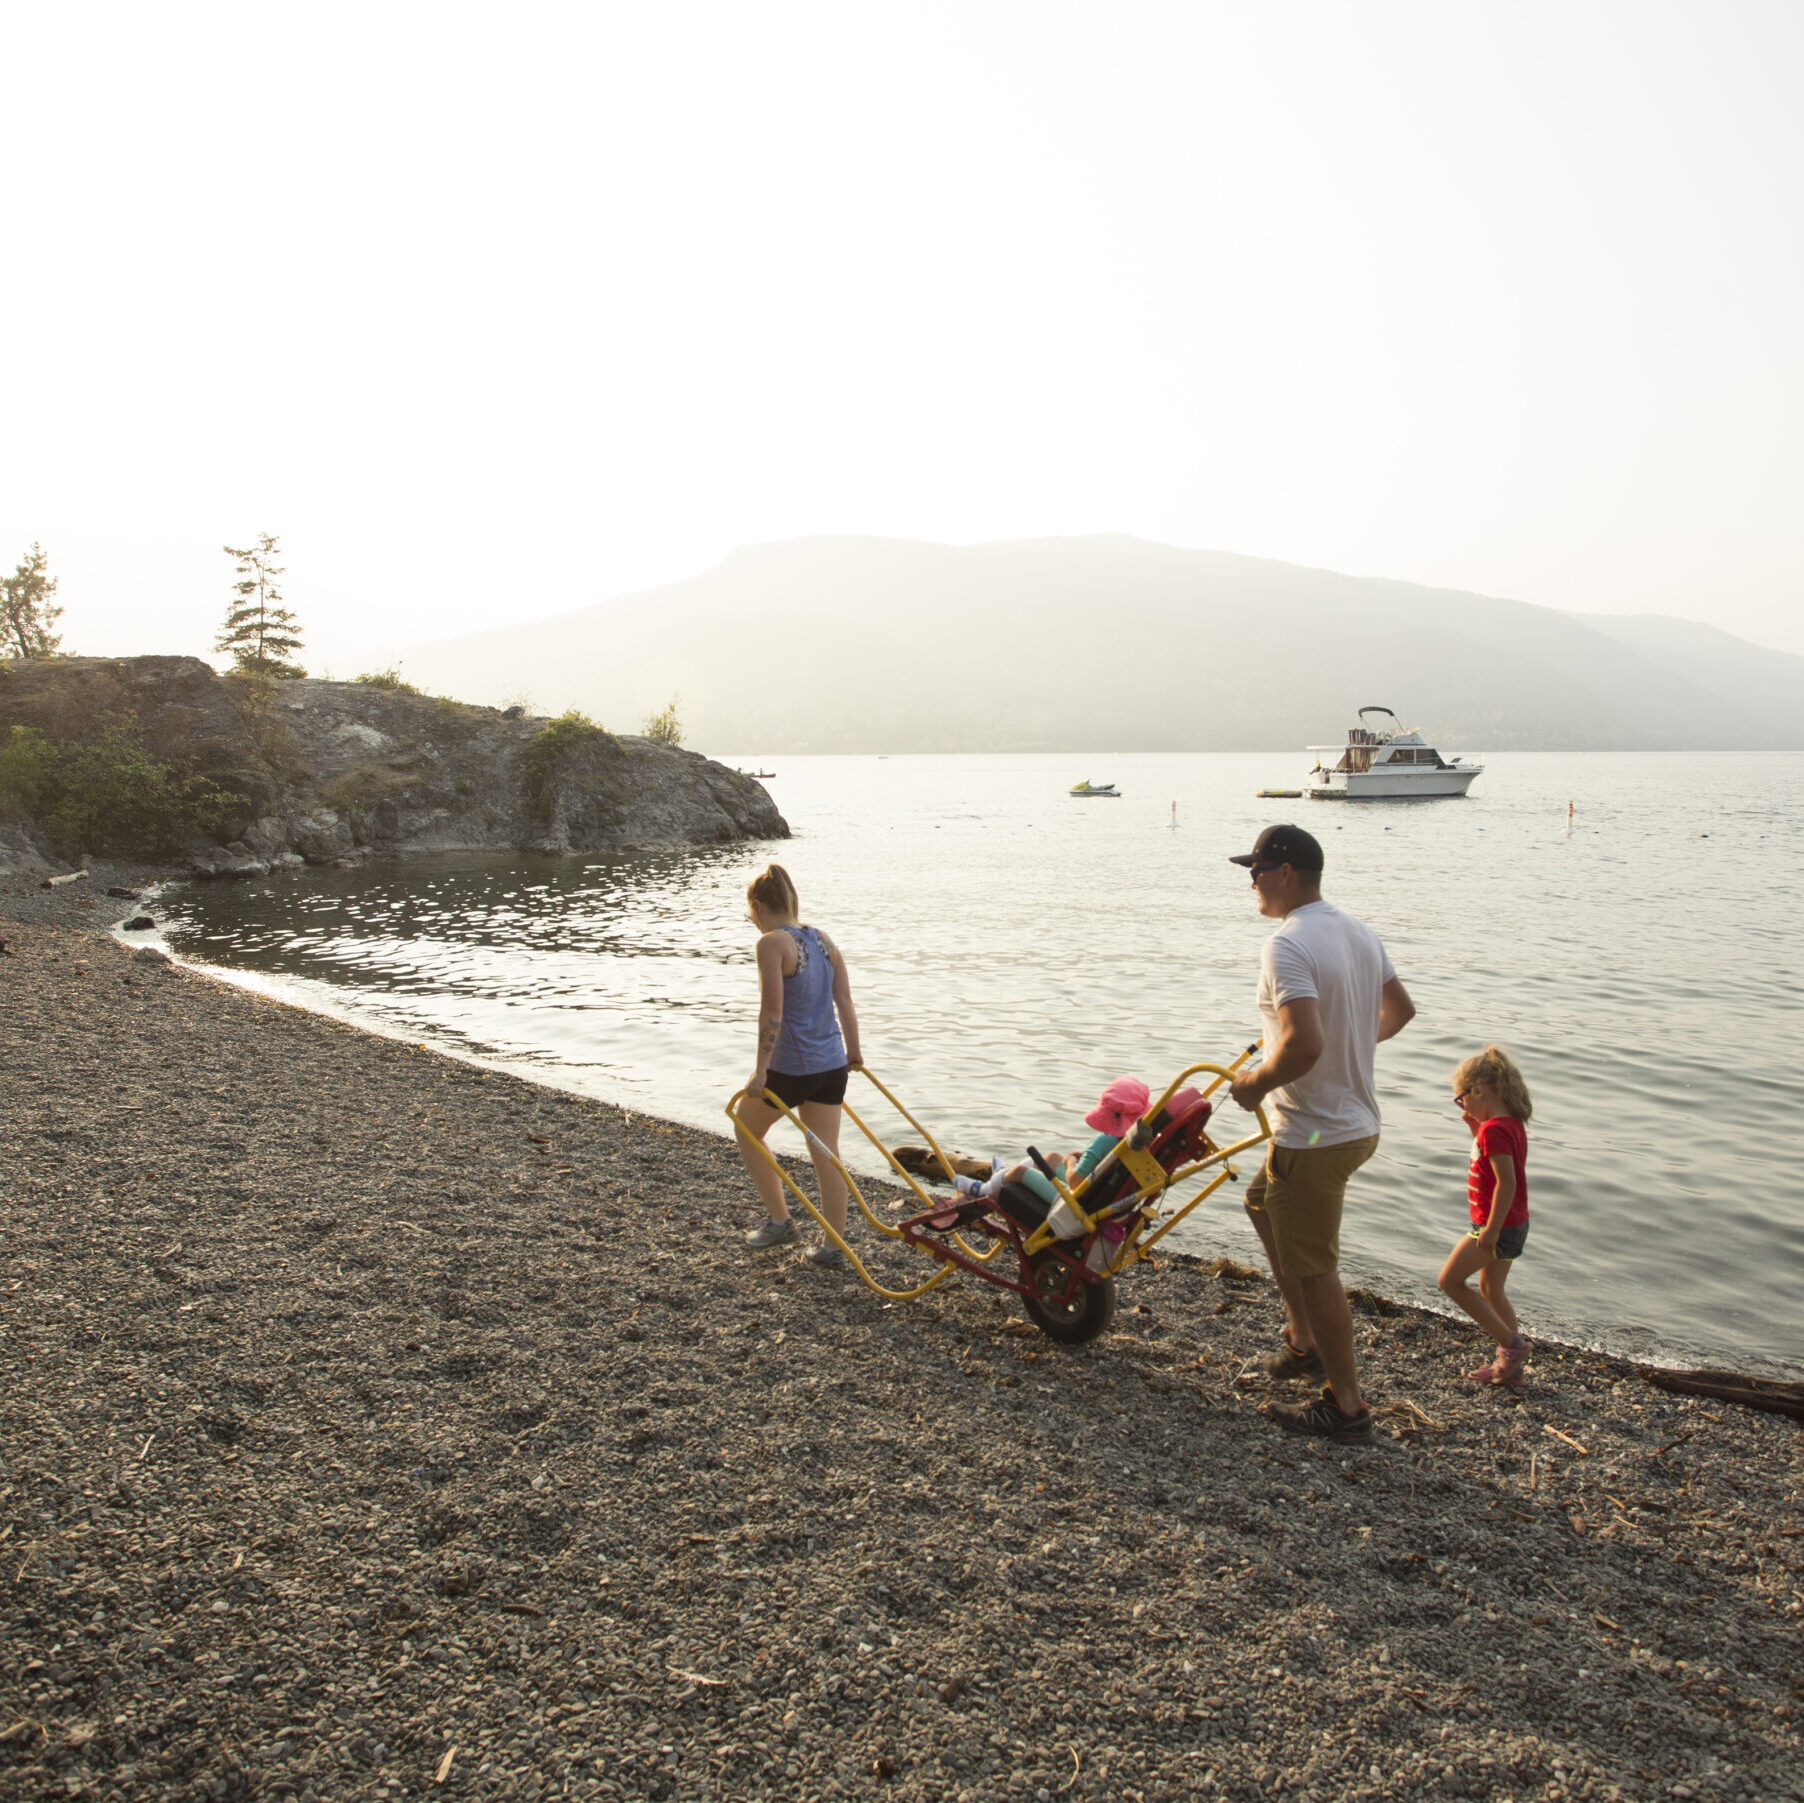 a family walking along the beach. one of the children is using a trail rider